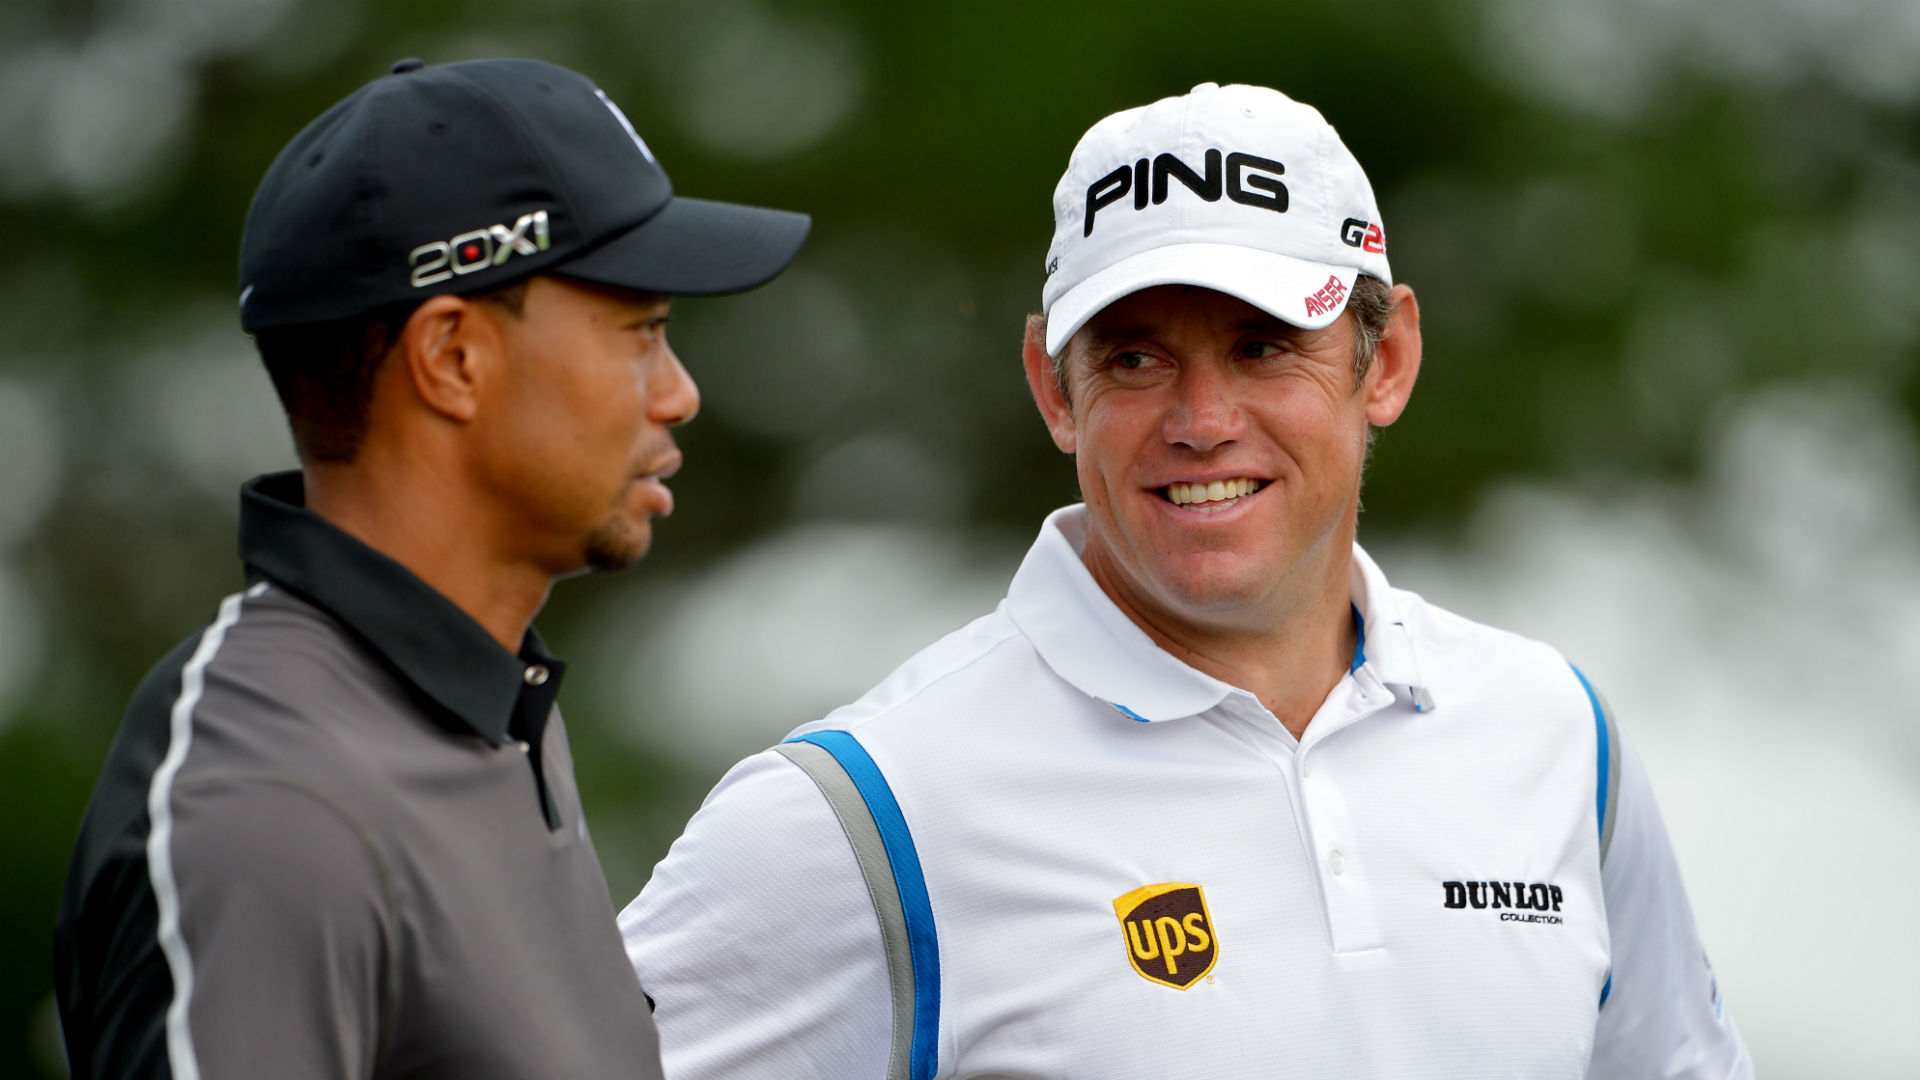 Lee Westwood questions Tiger Woods' role in U.S. Ryder Cup team